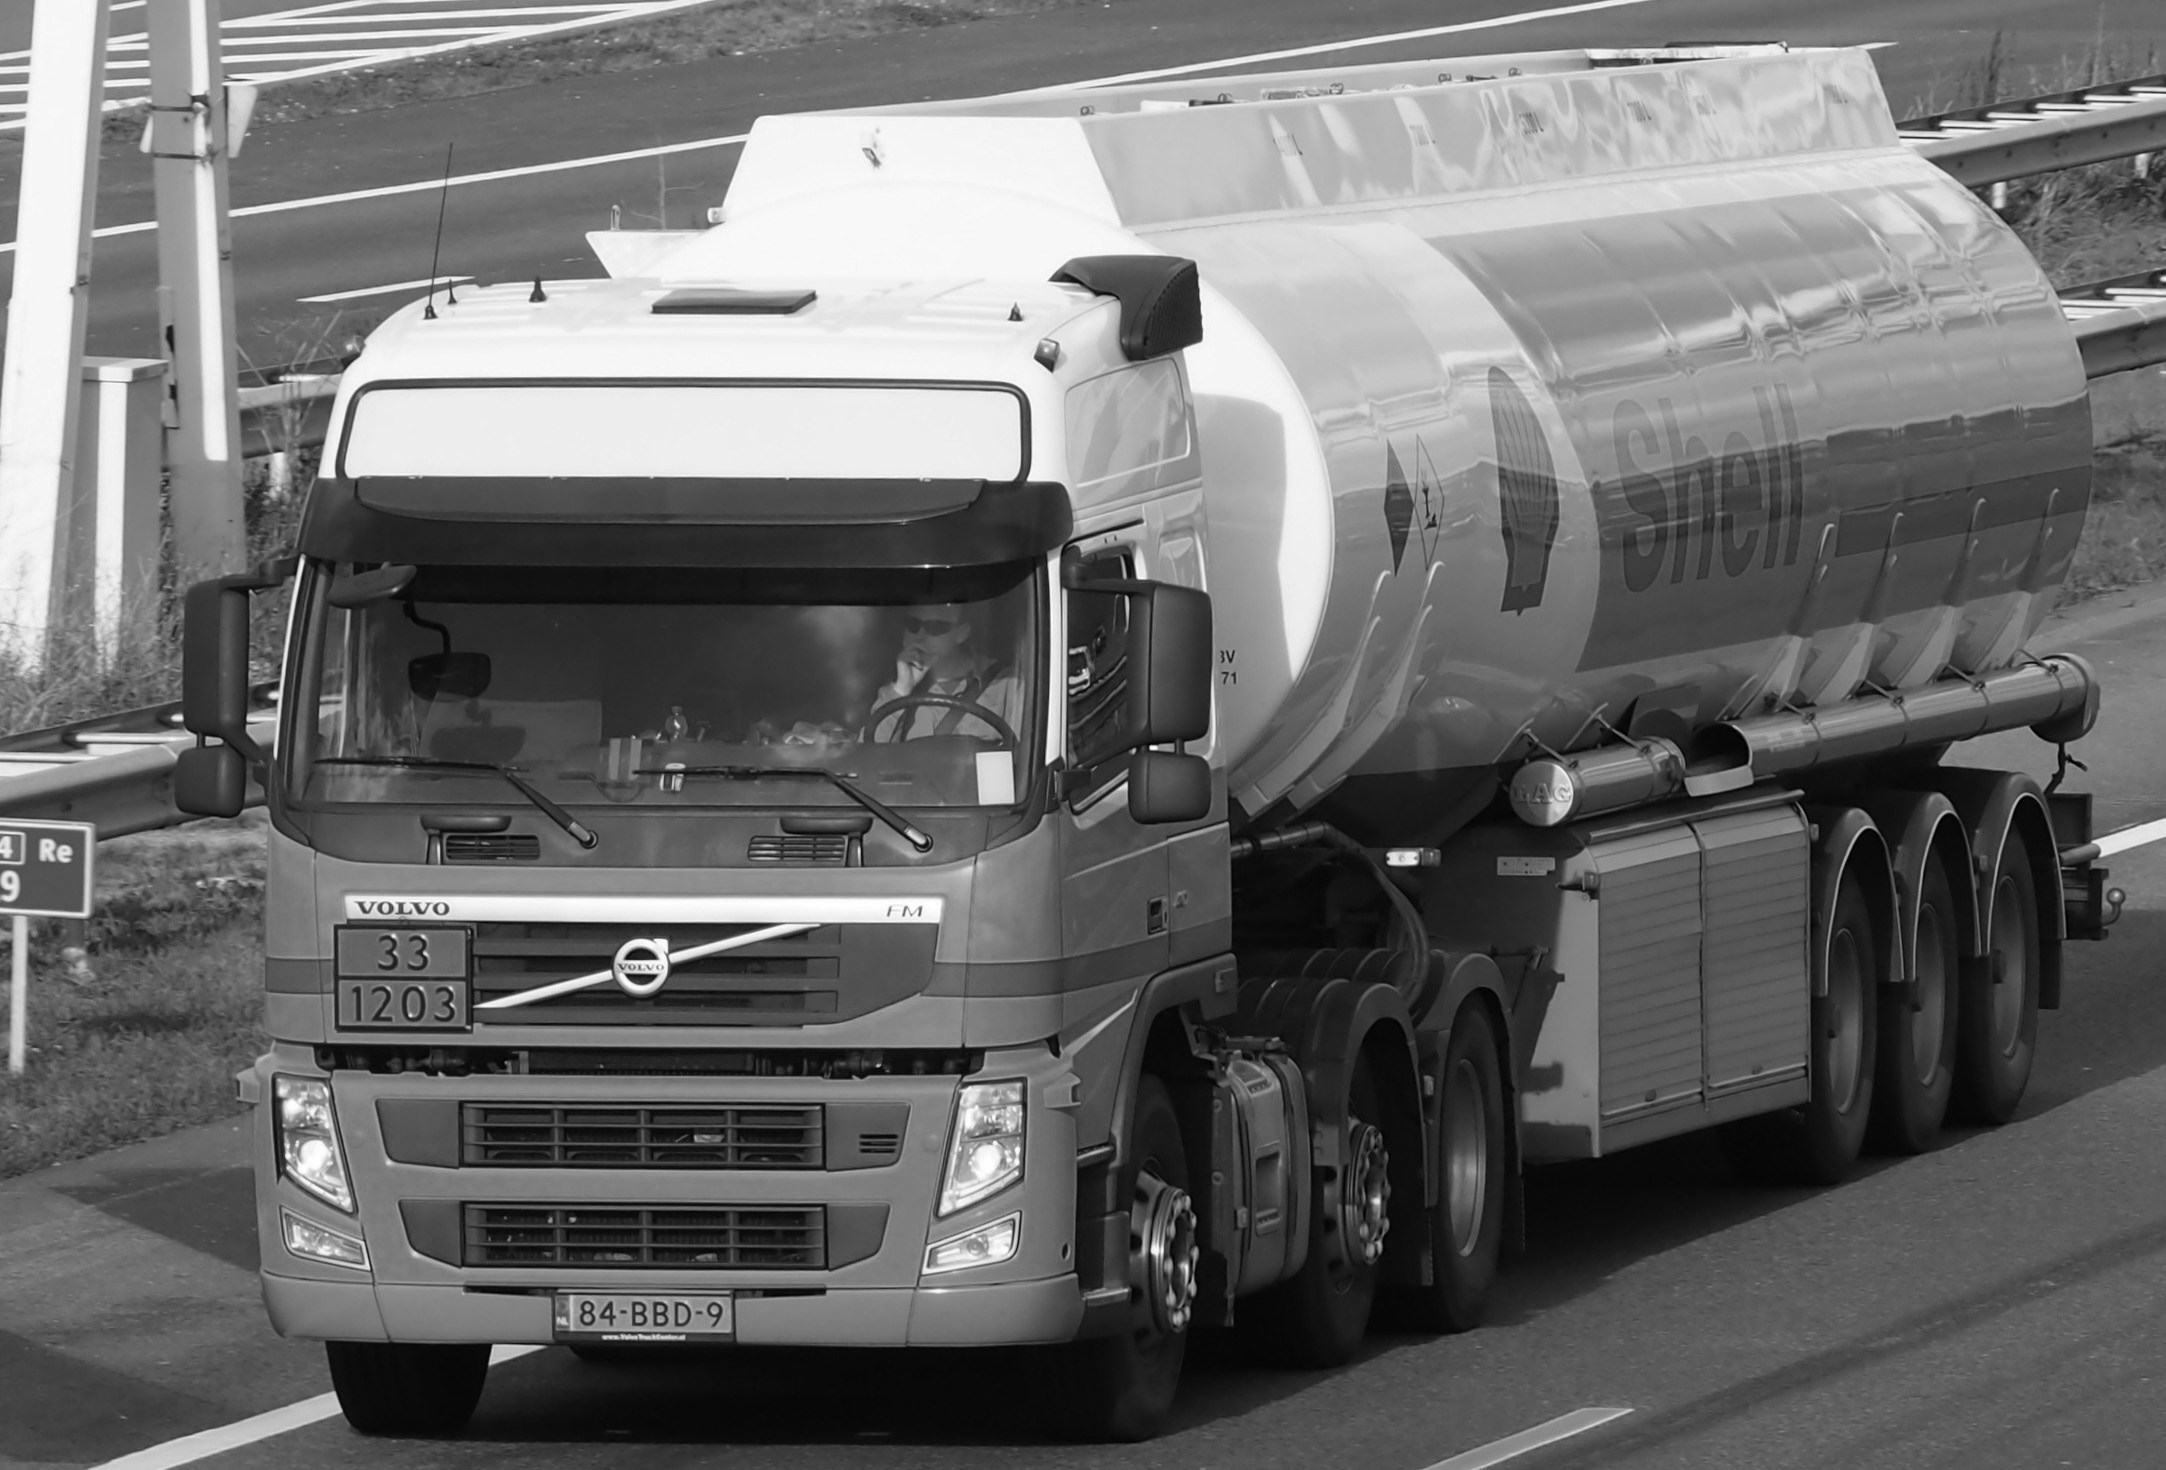 With trucks these days featuring the latest diesel technology and costing hundreds of thousands of dollars a pop, there is no way 'truck diesel' can be an inferior fuel